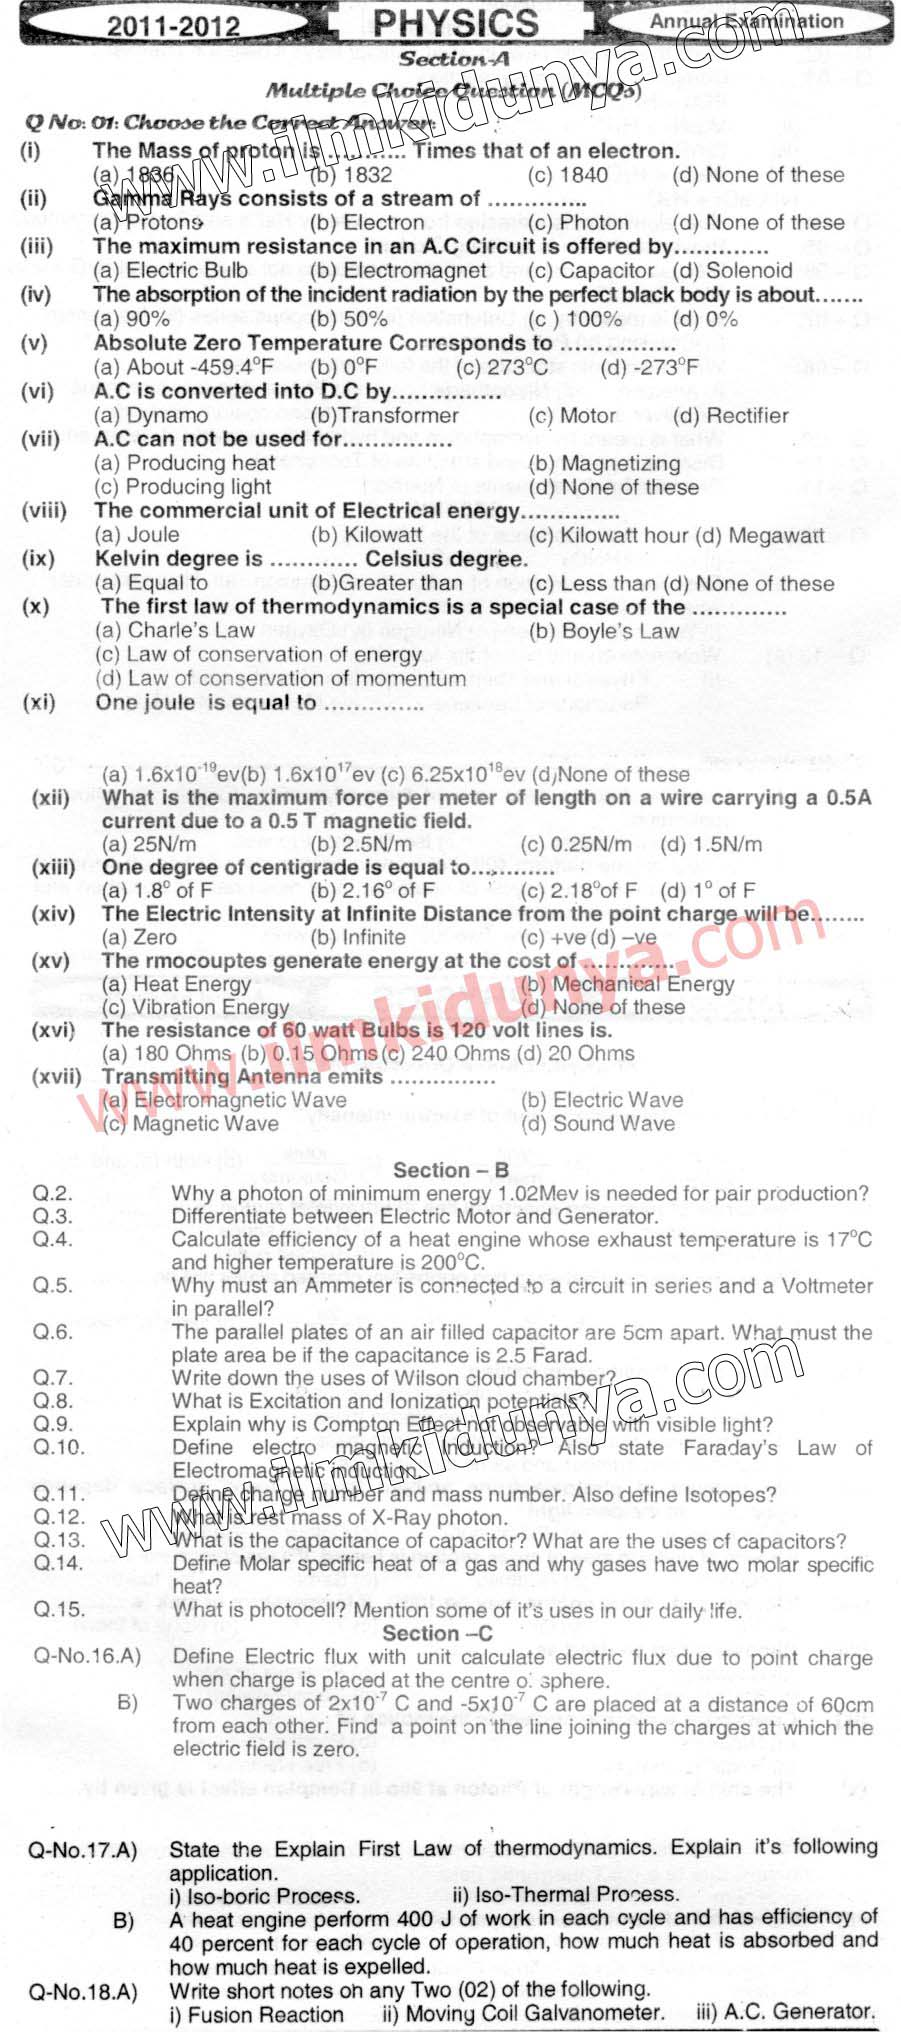 Past Papers 2012 Hyderabad Board Inter Part 2 Physics